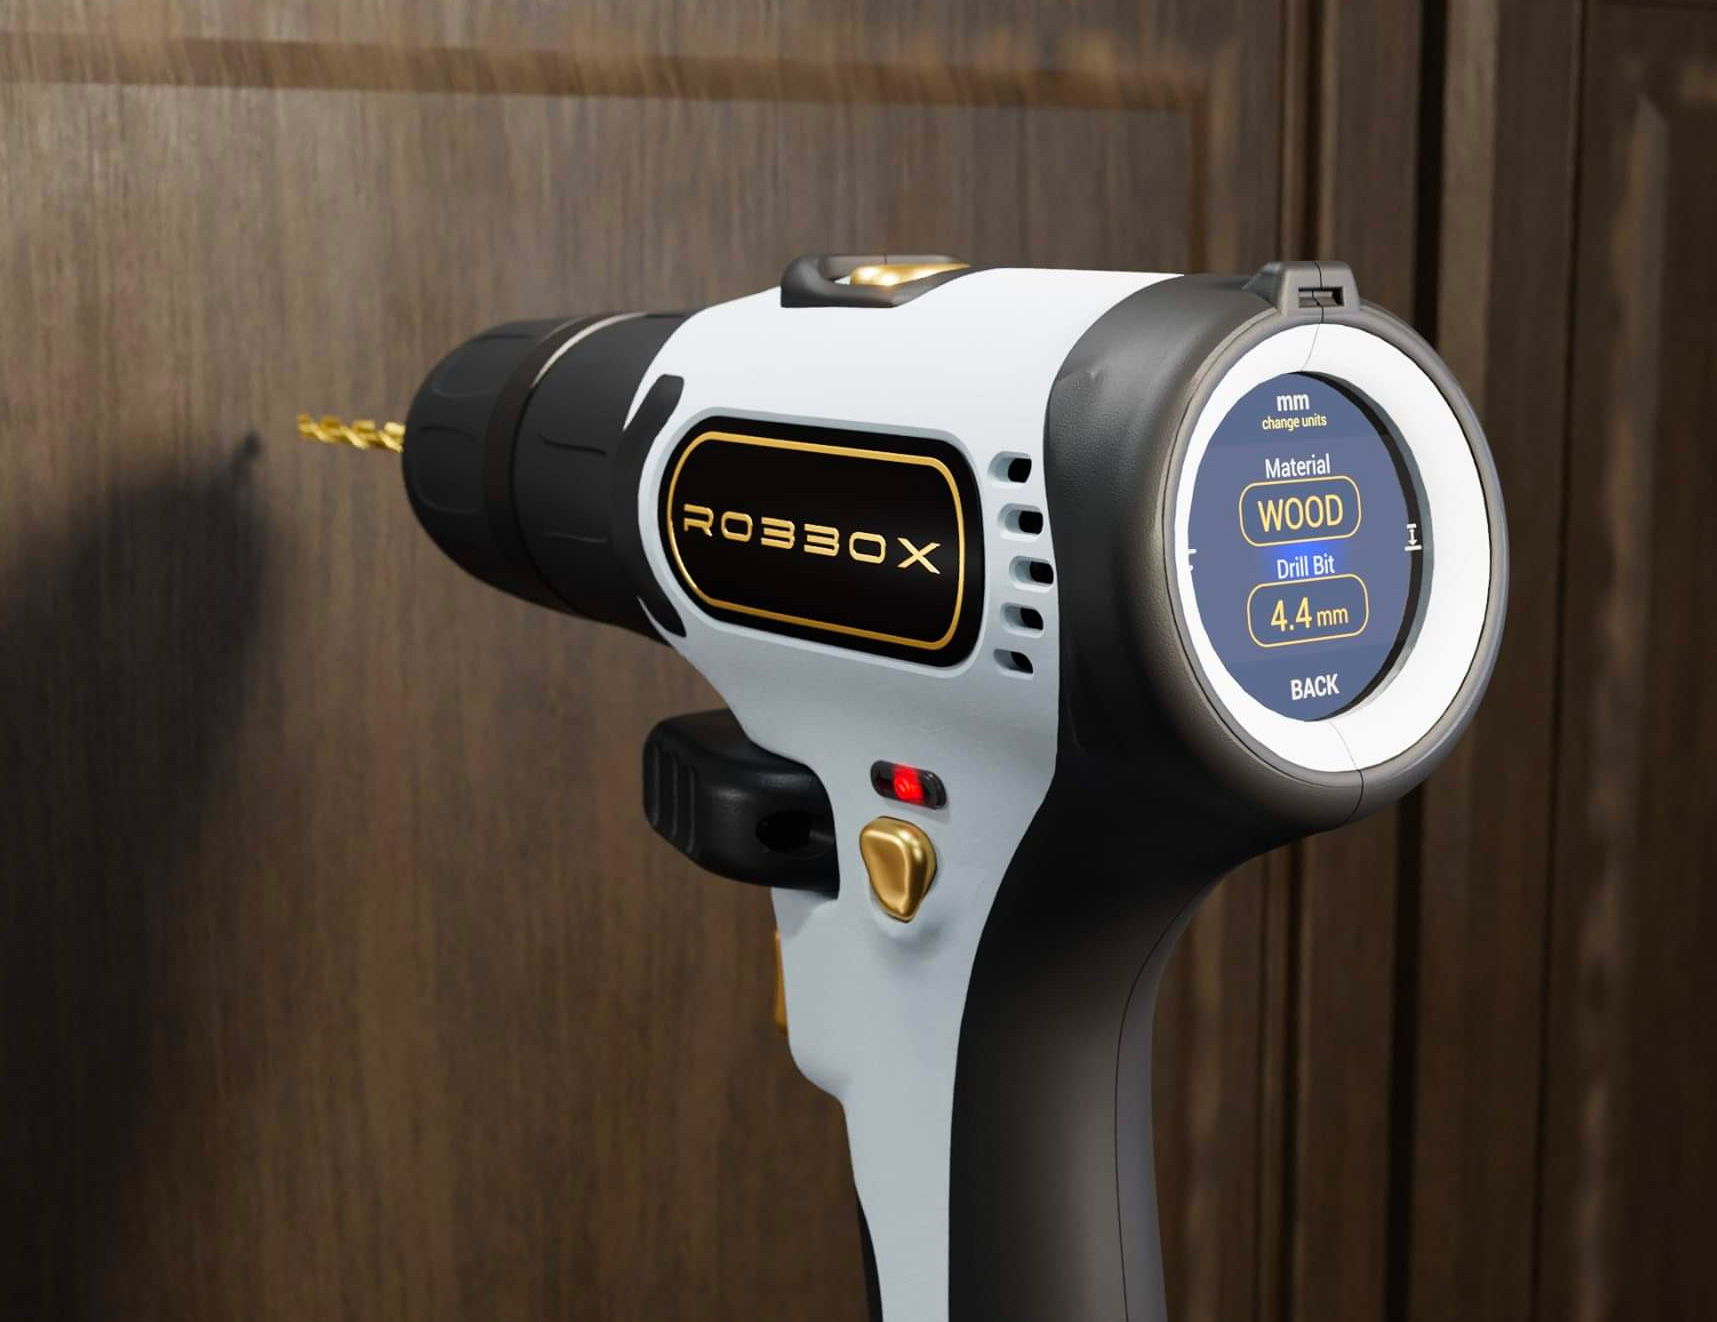 Laser-Level Twice, Drill Once with the xDrill at werd.com